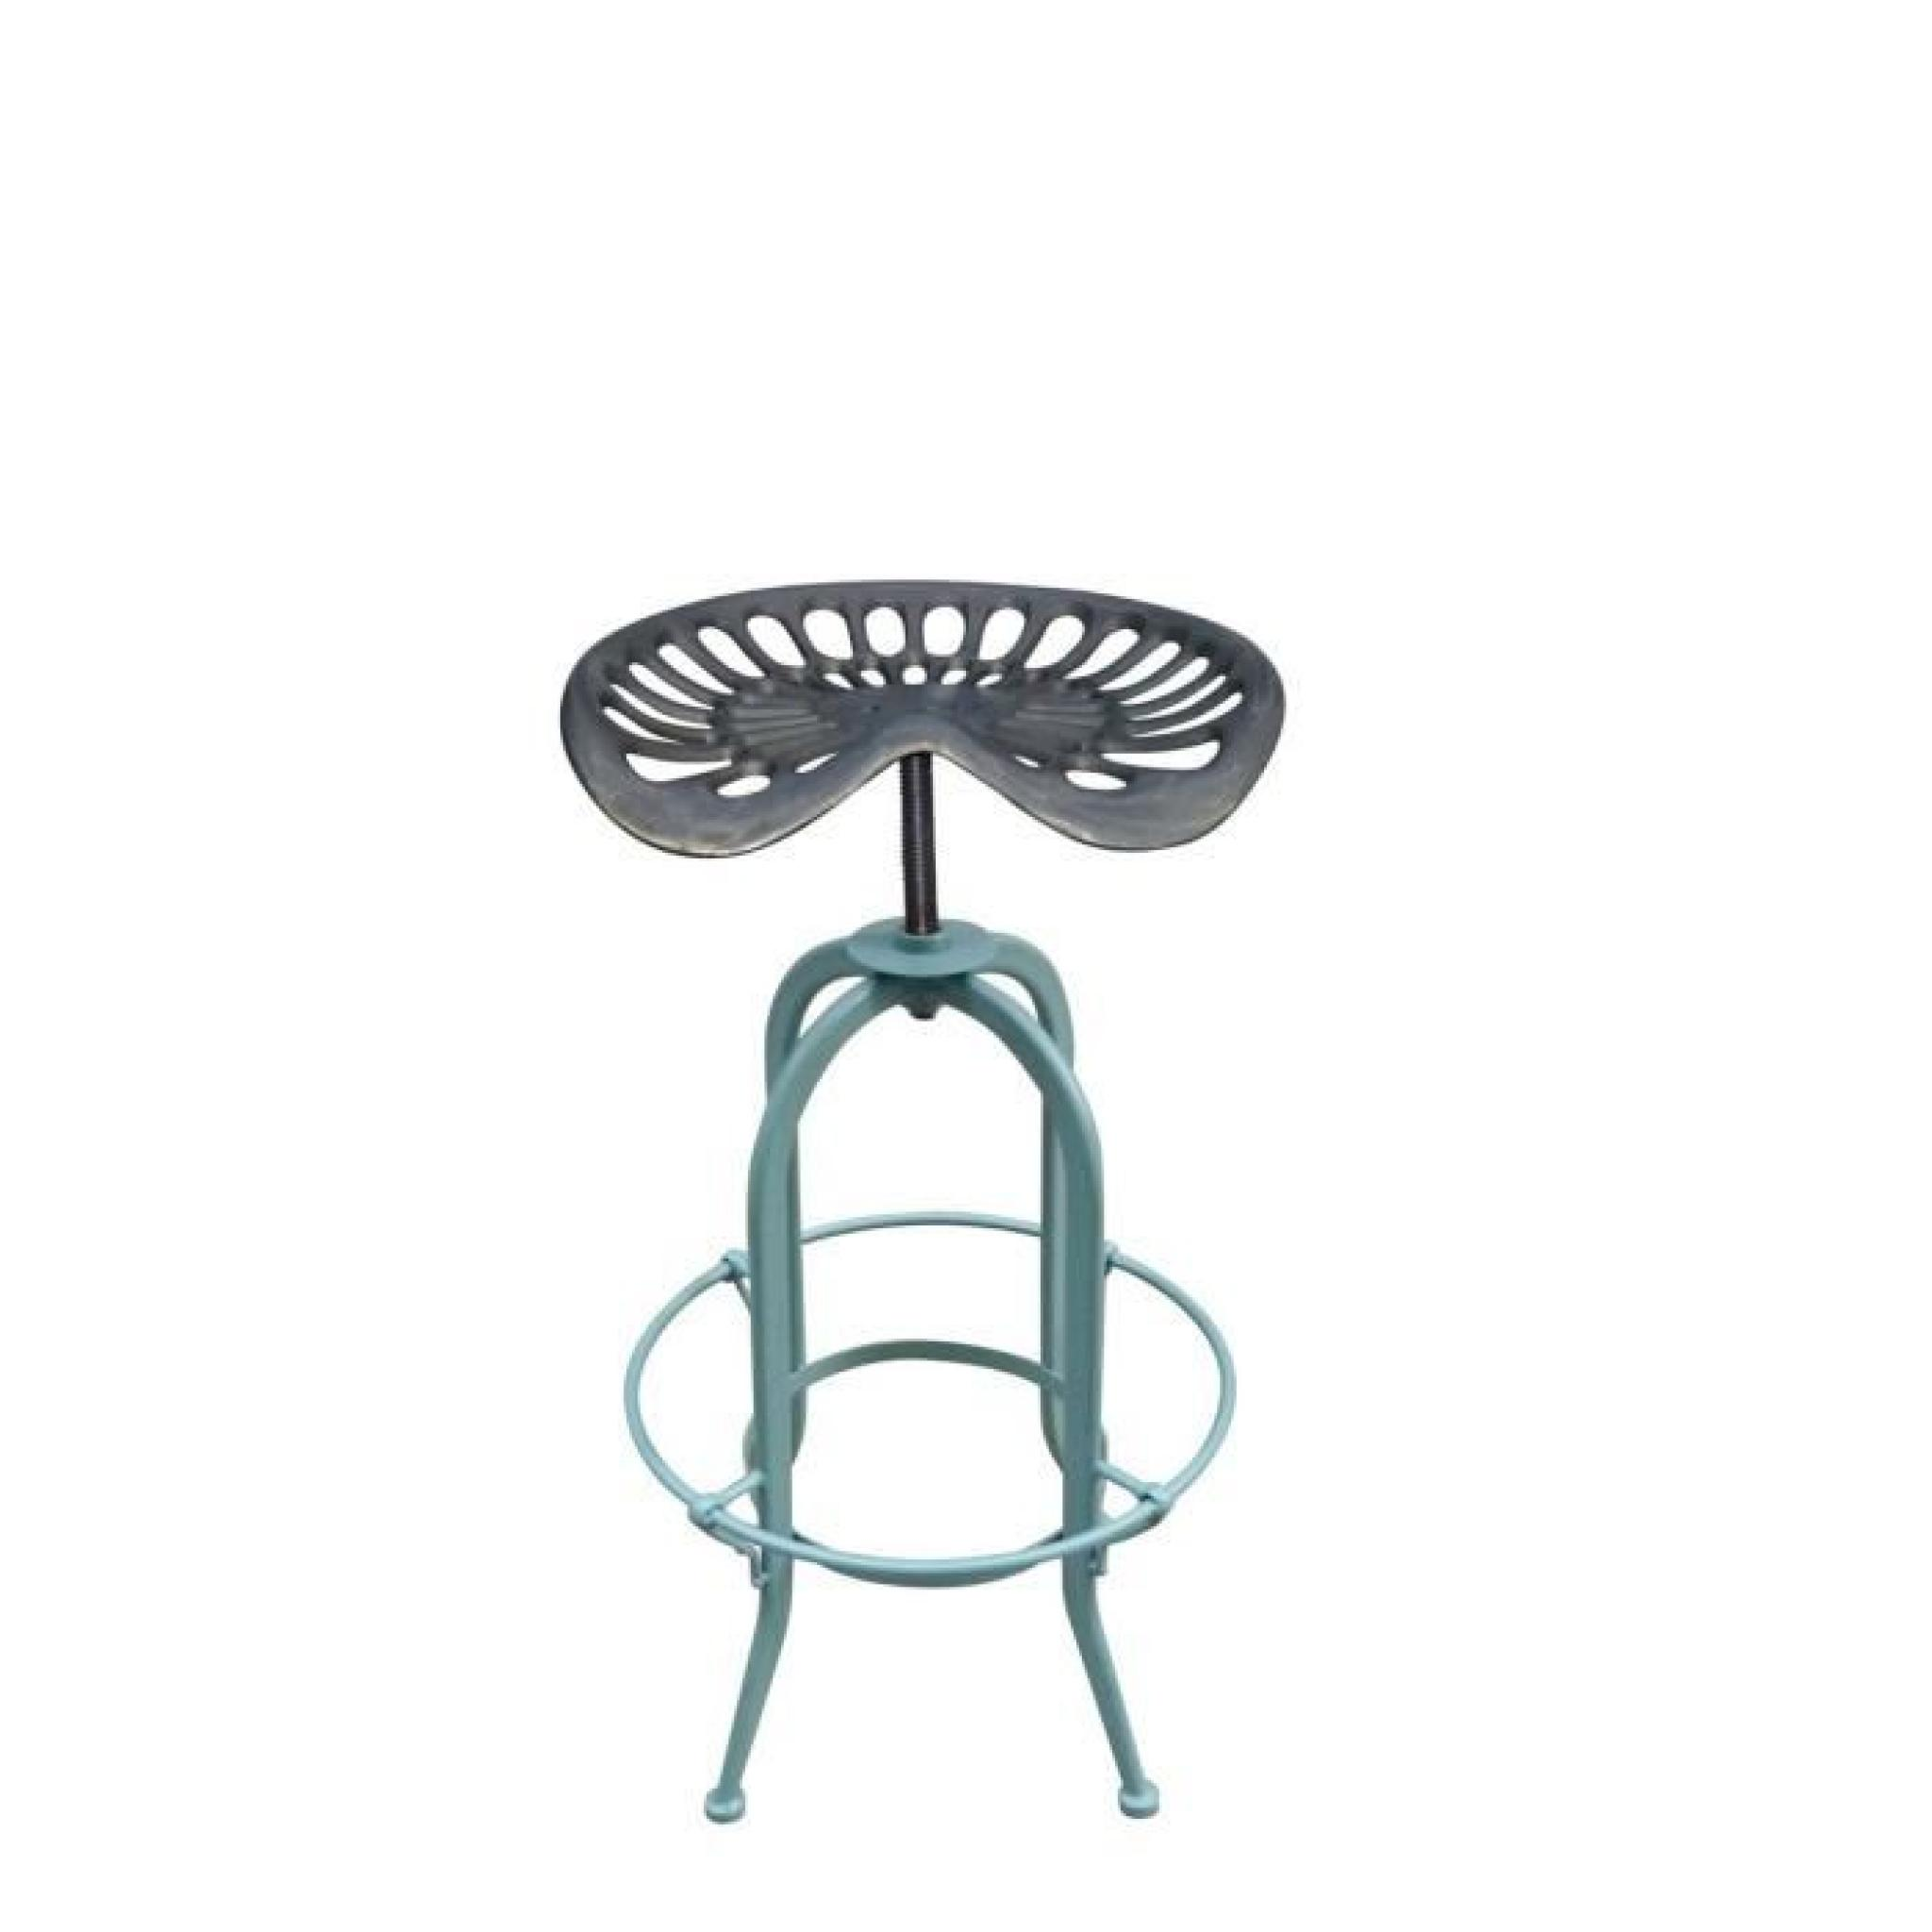 tabouret de bar vintage tracteur massey couleur bleu achat vente tabouret de bar pas cher. Black Bedroom Furniture Sets. Home Design Ideas